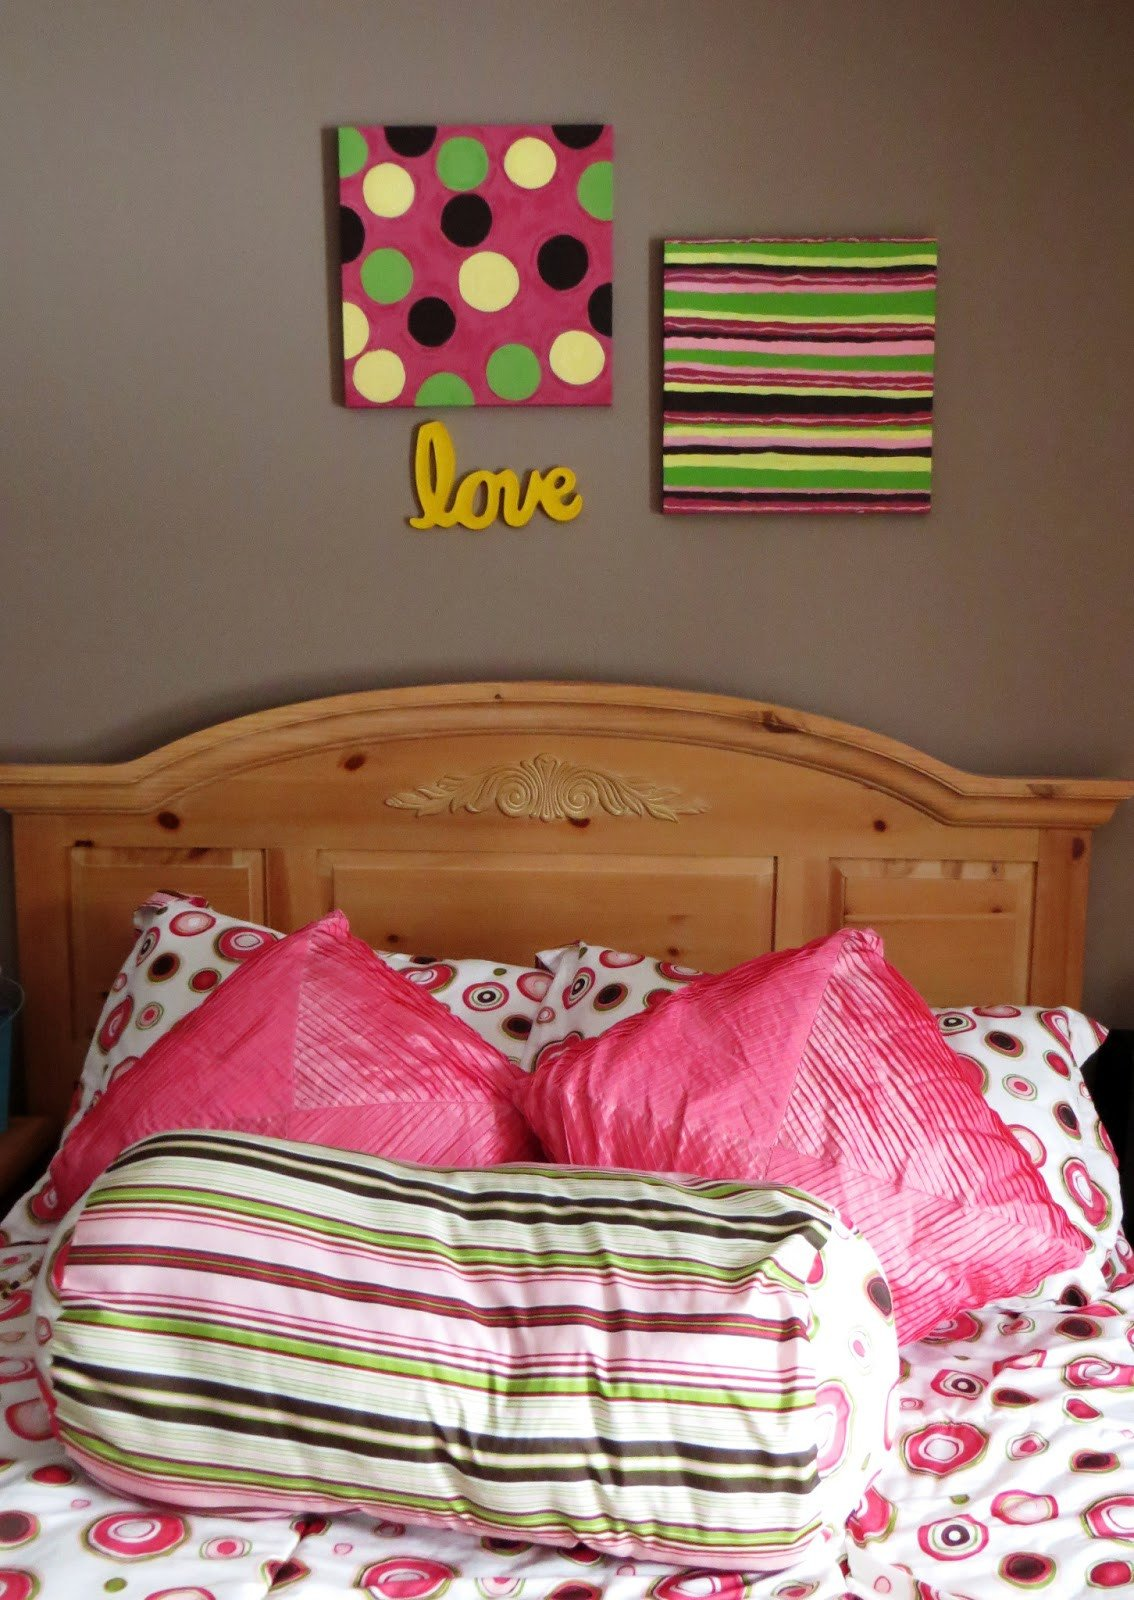 Diy Bedroom Decor for Teens Awesome Namely original Diy Teen Girl Room Decor